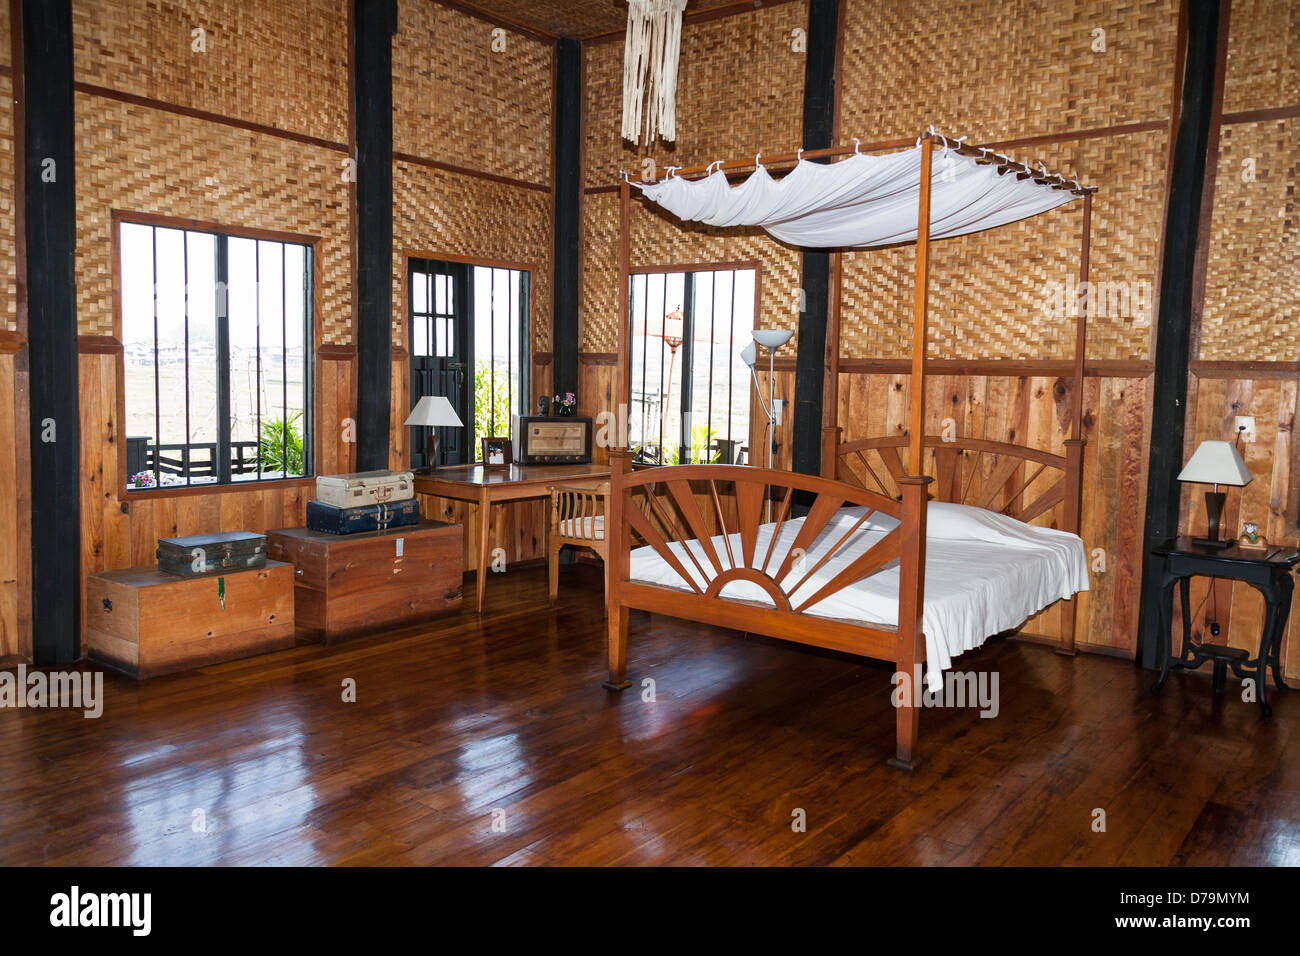 Awesome Bedroom Inside The Inthar Heritage House, Inpawkhon Village, Inle Lake,  Shan State, Myanmar, (Burma)